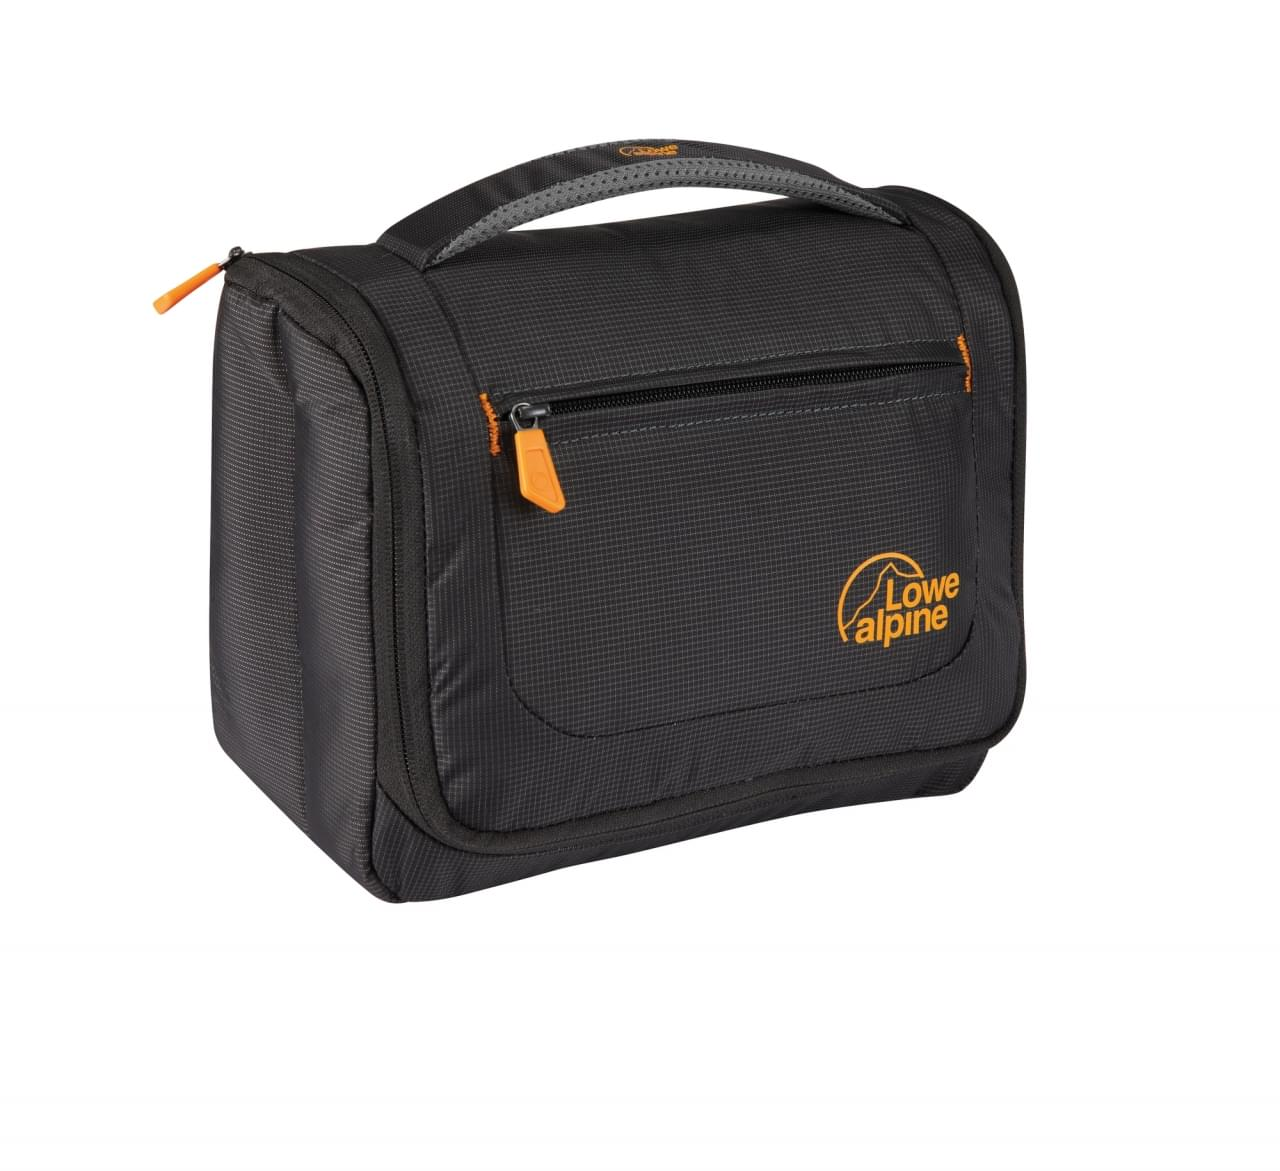 Lowe Alpine Wash Bag Small Toilettas